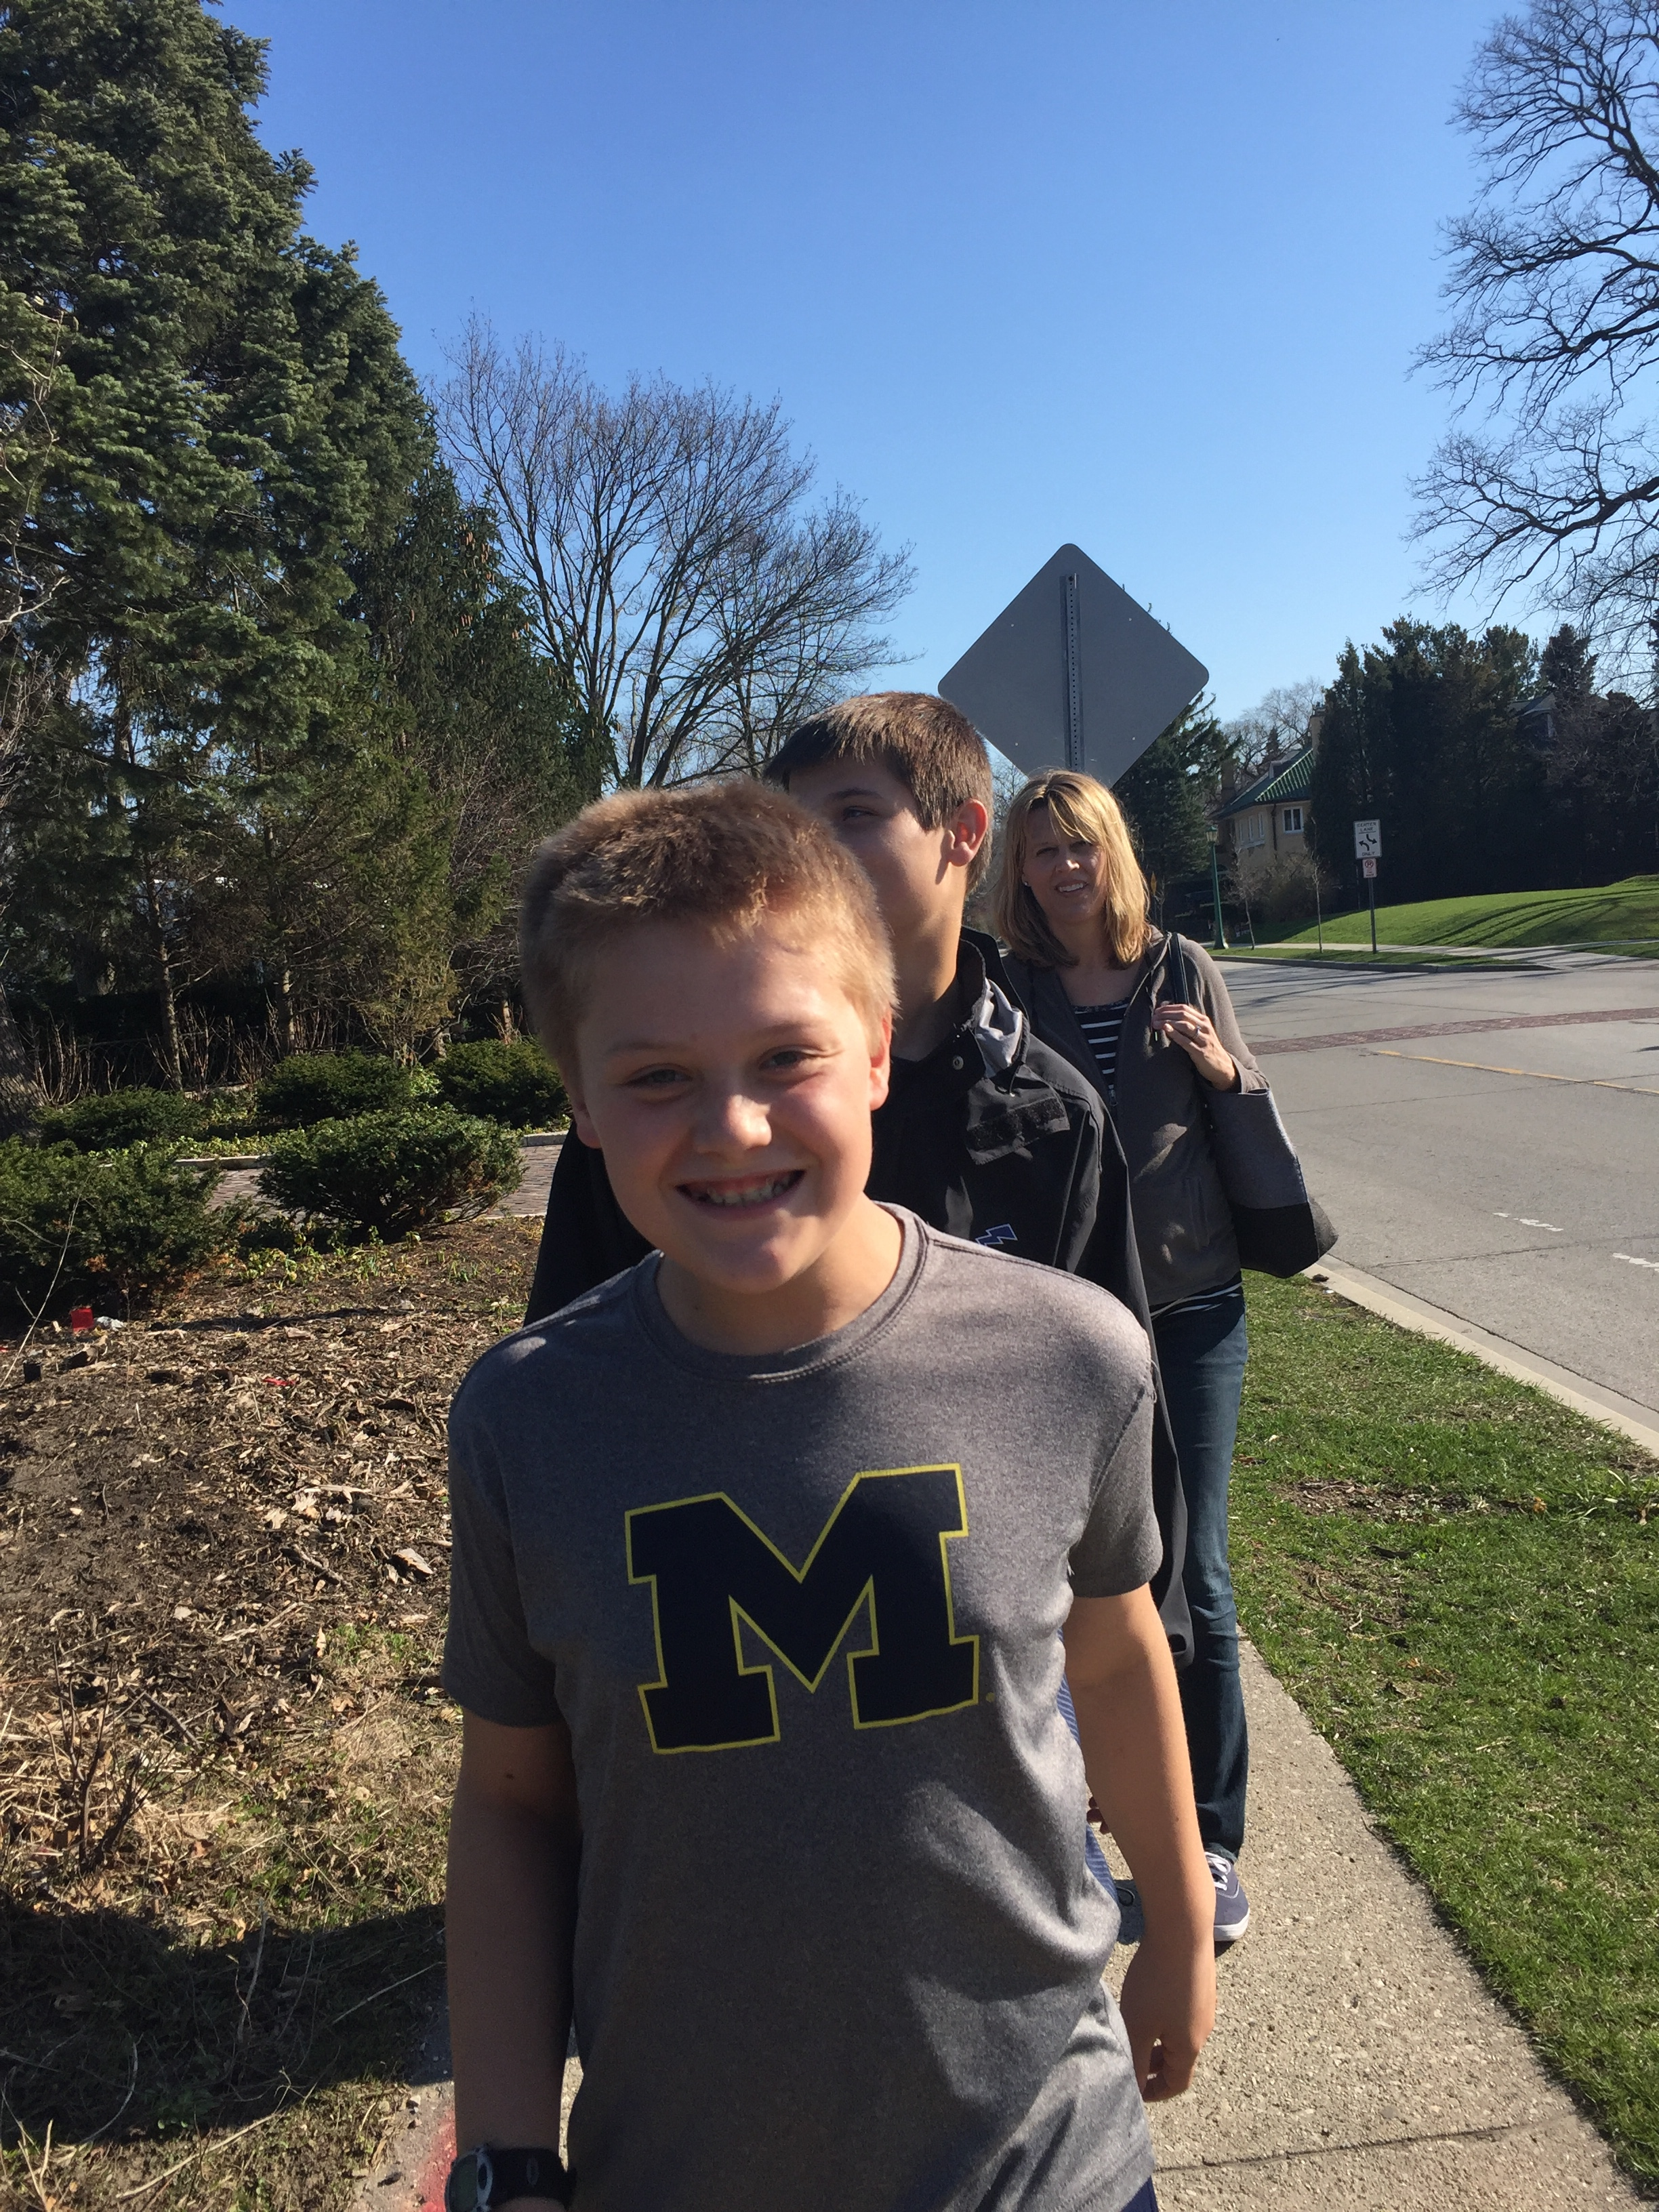 Liam proudly displays his Michigan pride.